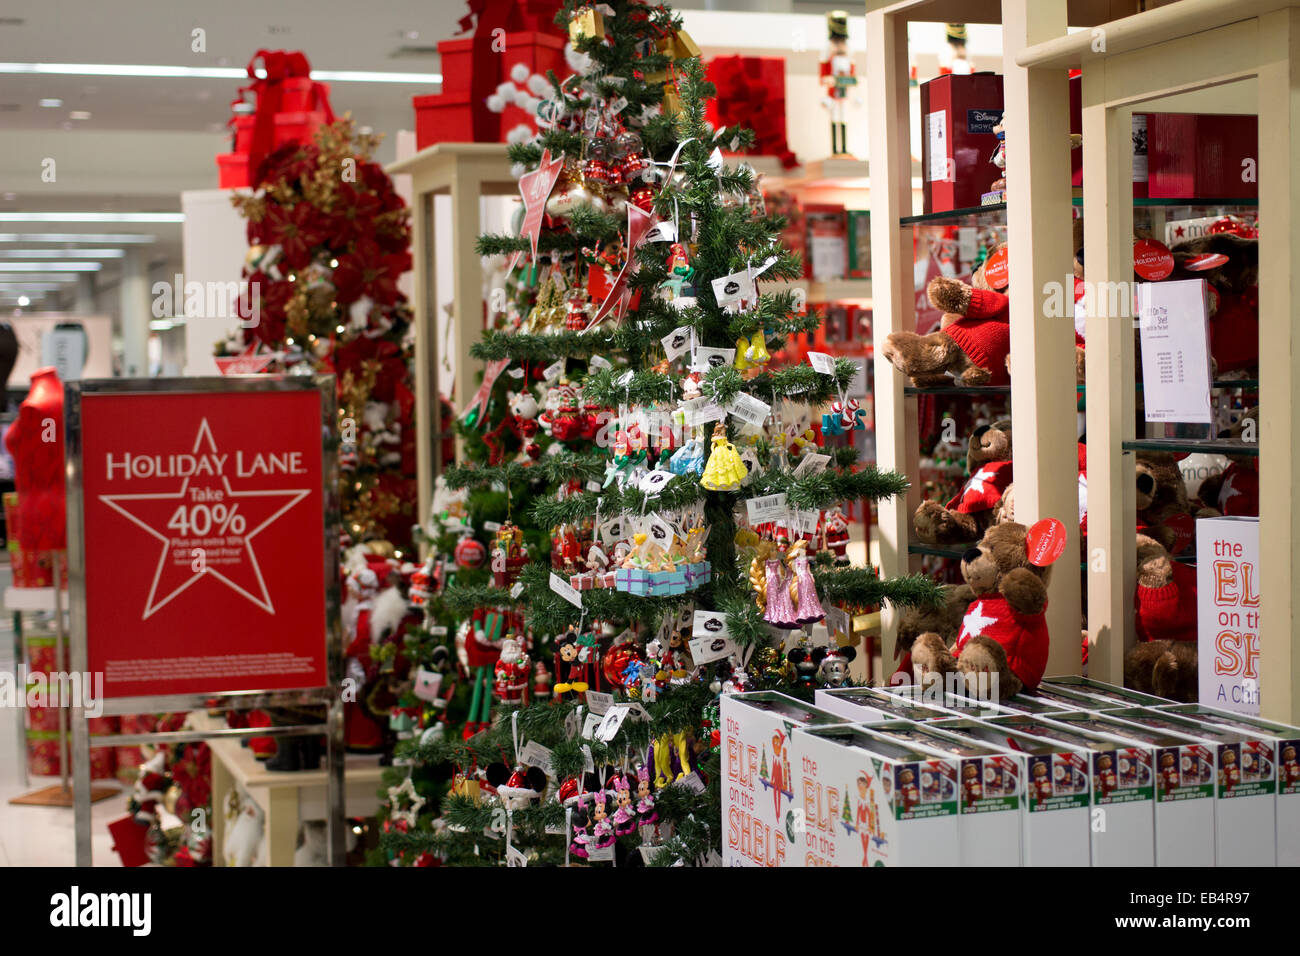 Christmas Tree Decorations At Macy's Department Store In